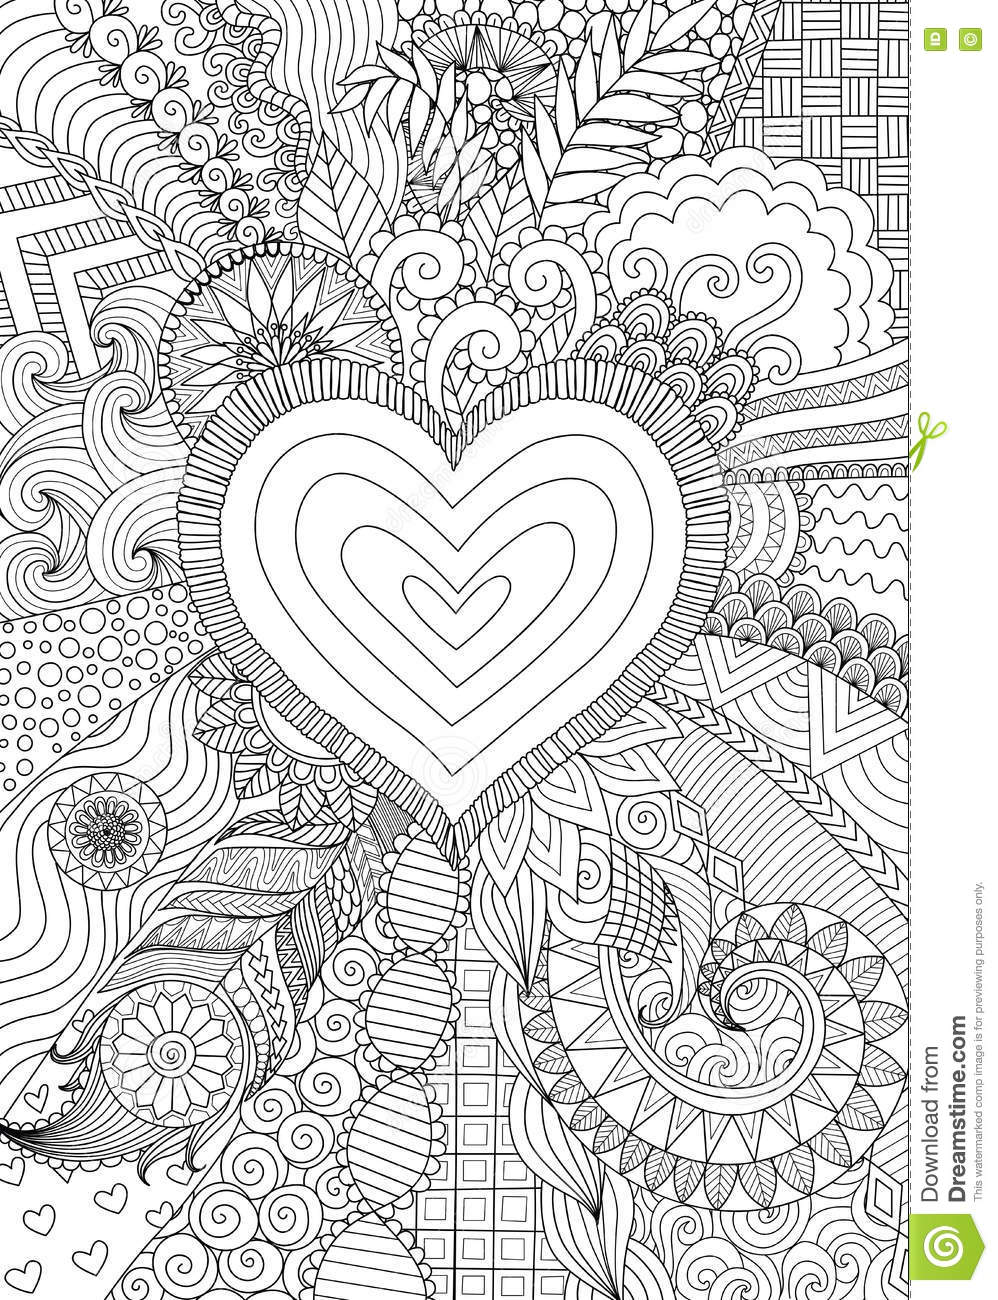 Abstract Line Art : Zendoodle design of heart shape on abstract line art